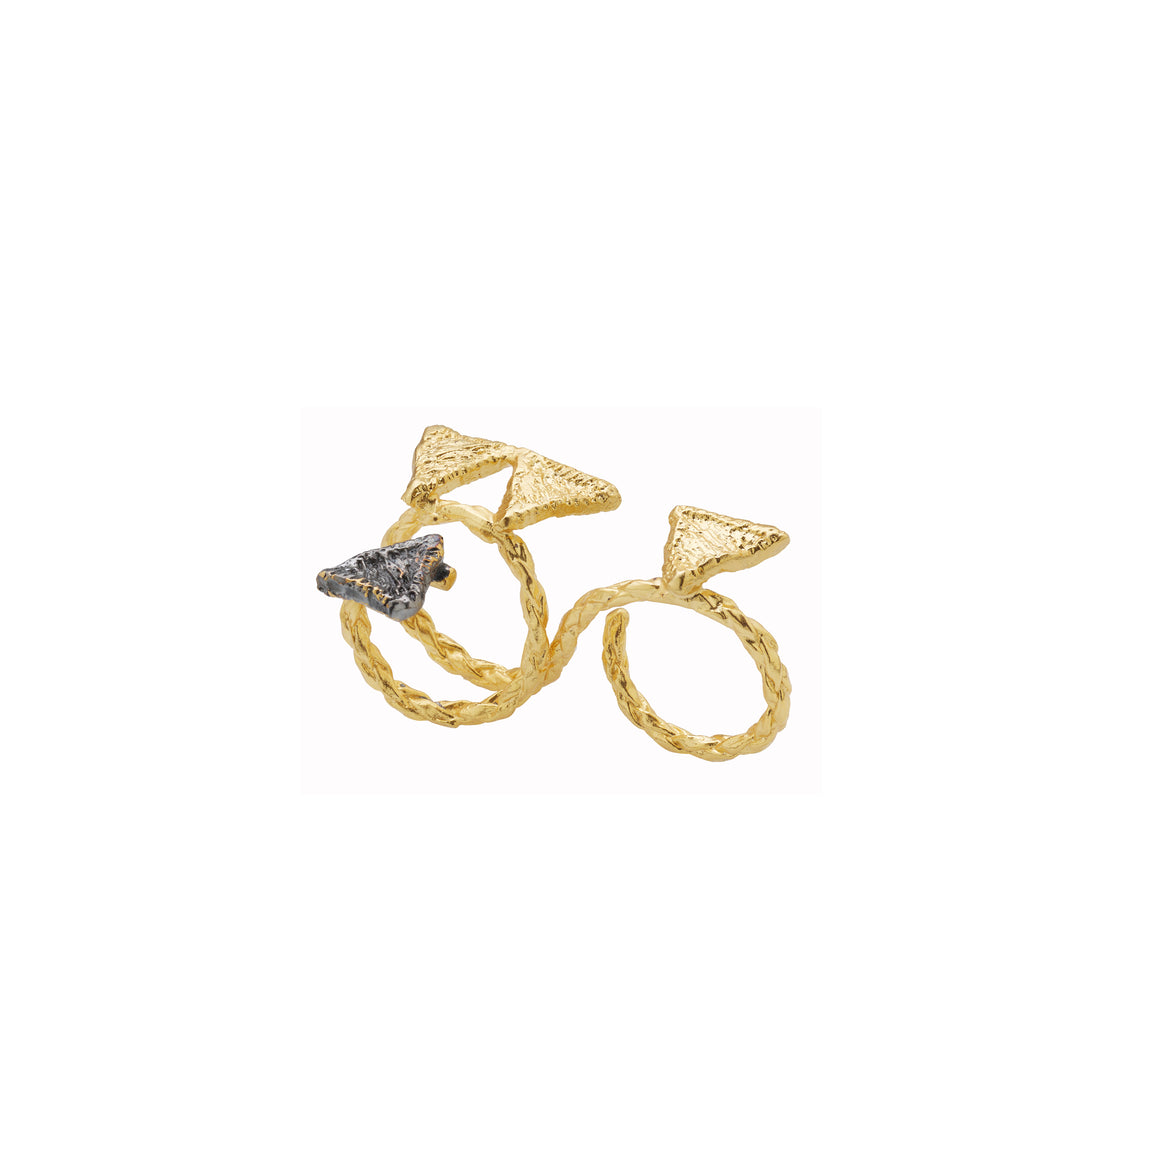 Tri DBsnake ring-gold/black-designed by alexandra koumba